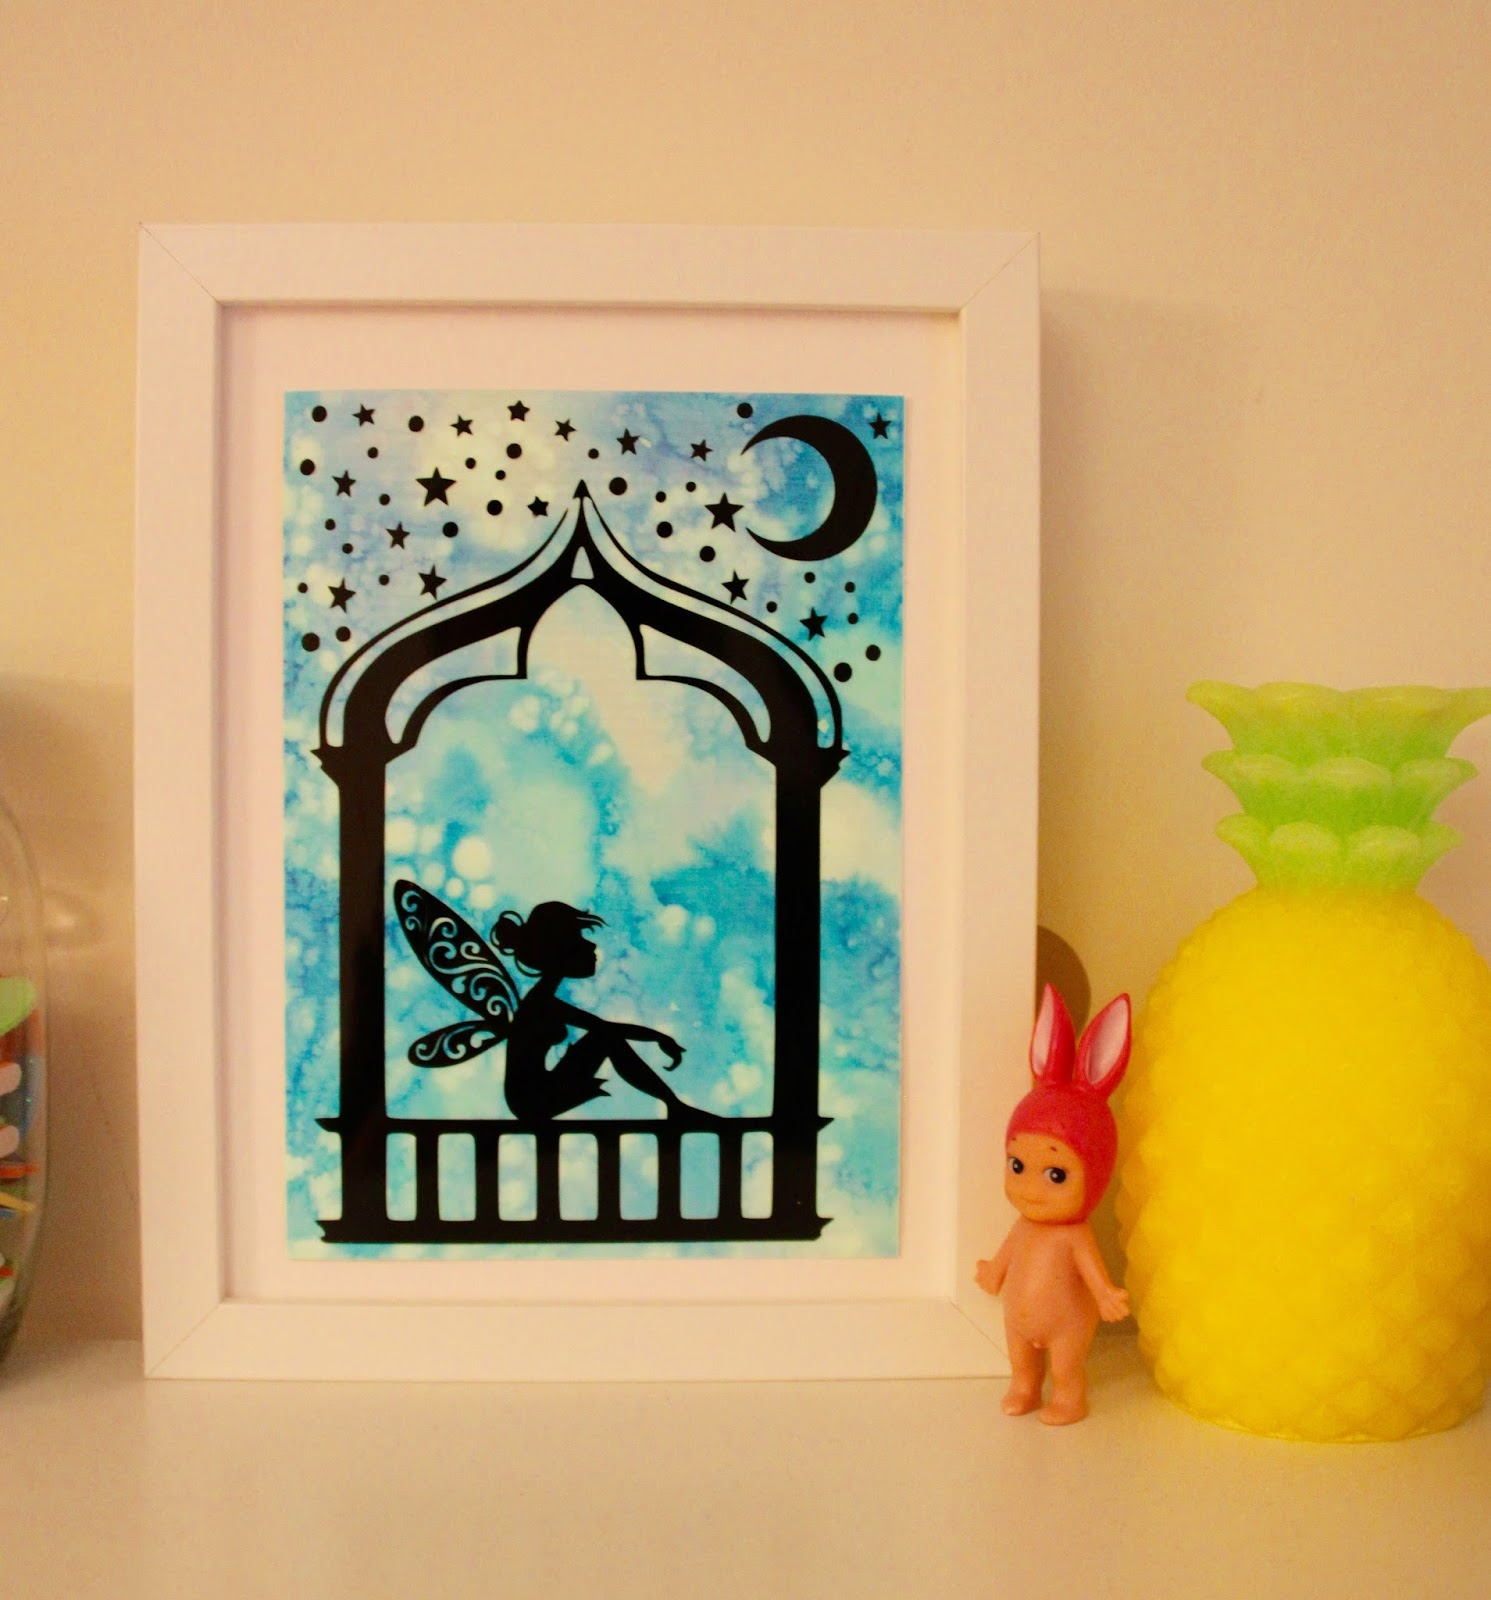 Silhouette UK: Fairy Frame using Glow in the Dark Sticker Paper